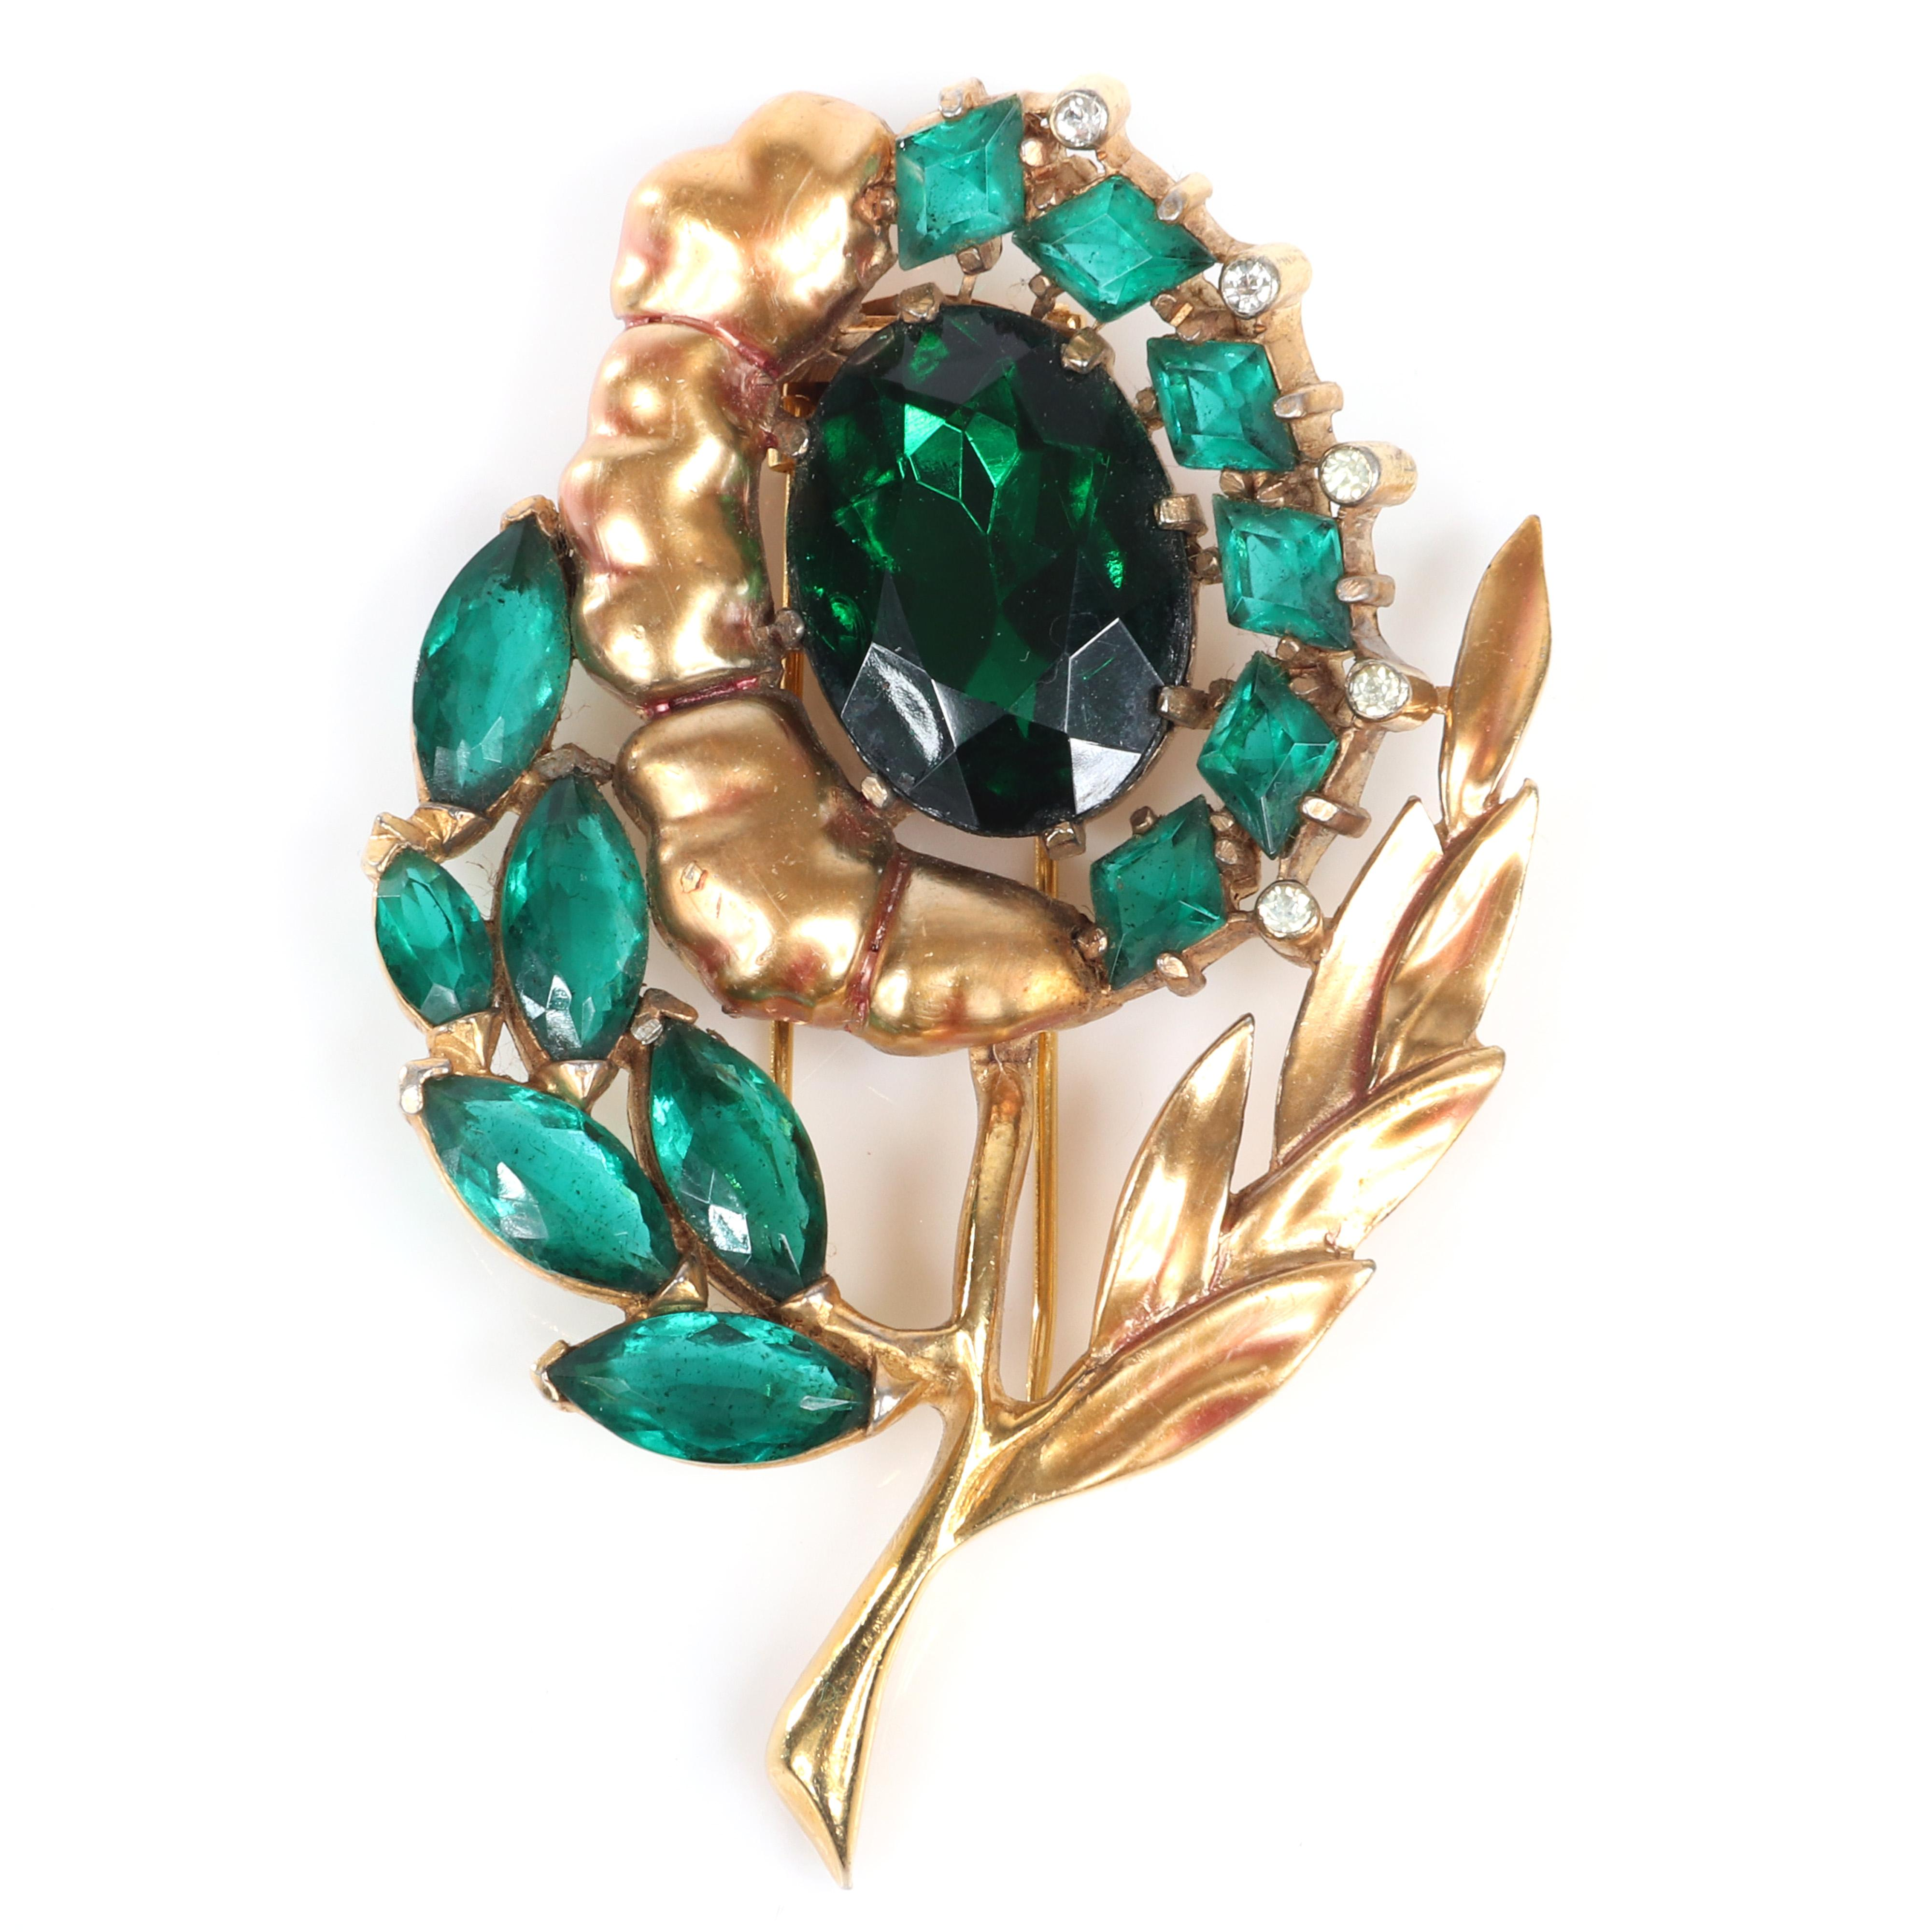 "Eisenberg Original flower fur clip with gold plating over pot metal, emerald rhinestones in marquise and diamond cut, clear bezel-sets accents and large oval central stone, 1940s. 3 3/8"" x 2 1/8"""